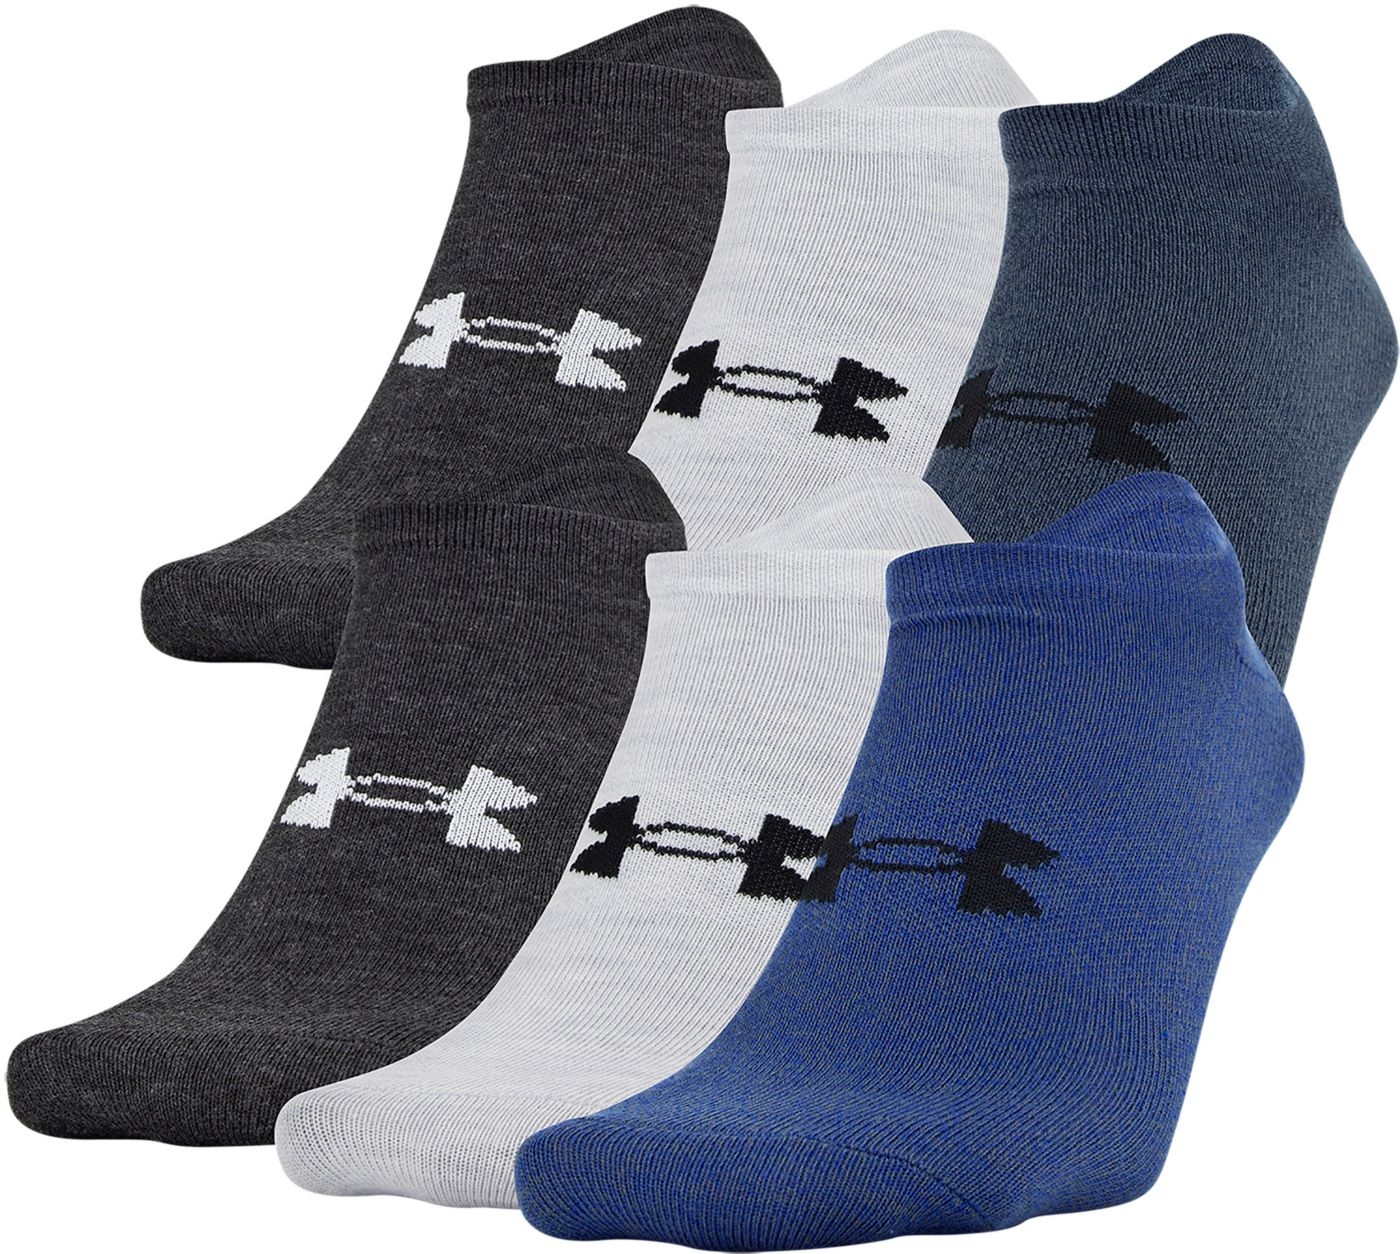 Under Armour Men's Essential Lite Low Cut Socks - 6 Pack